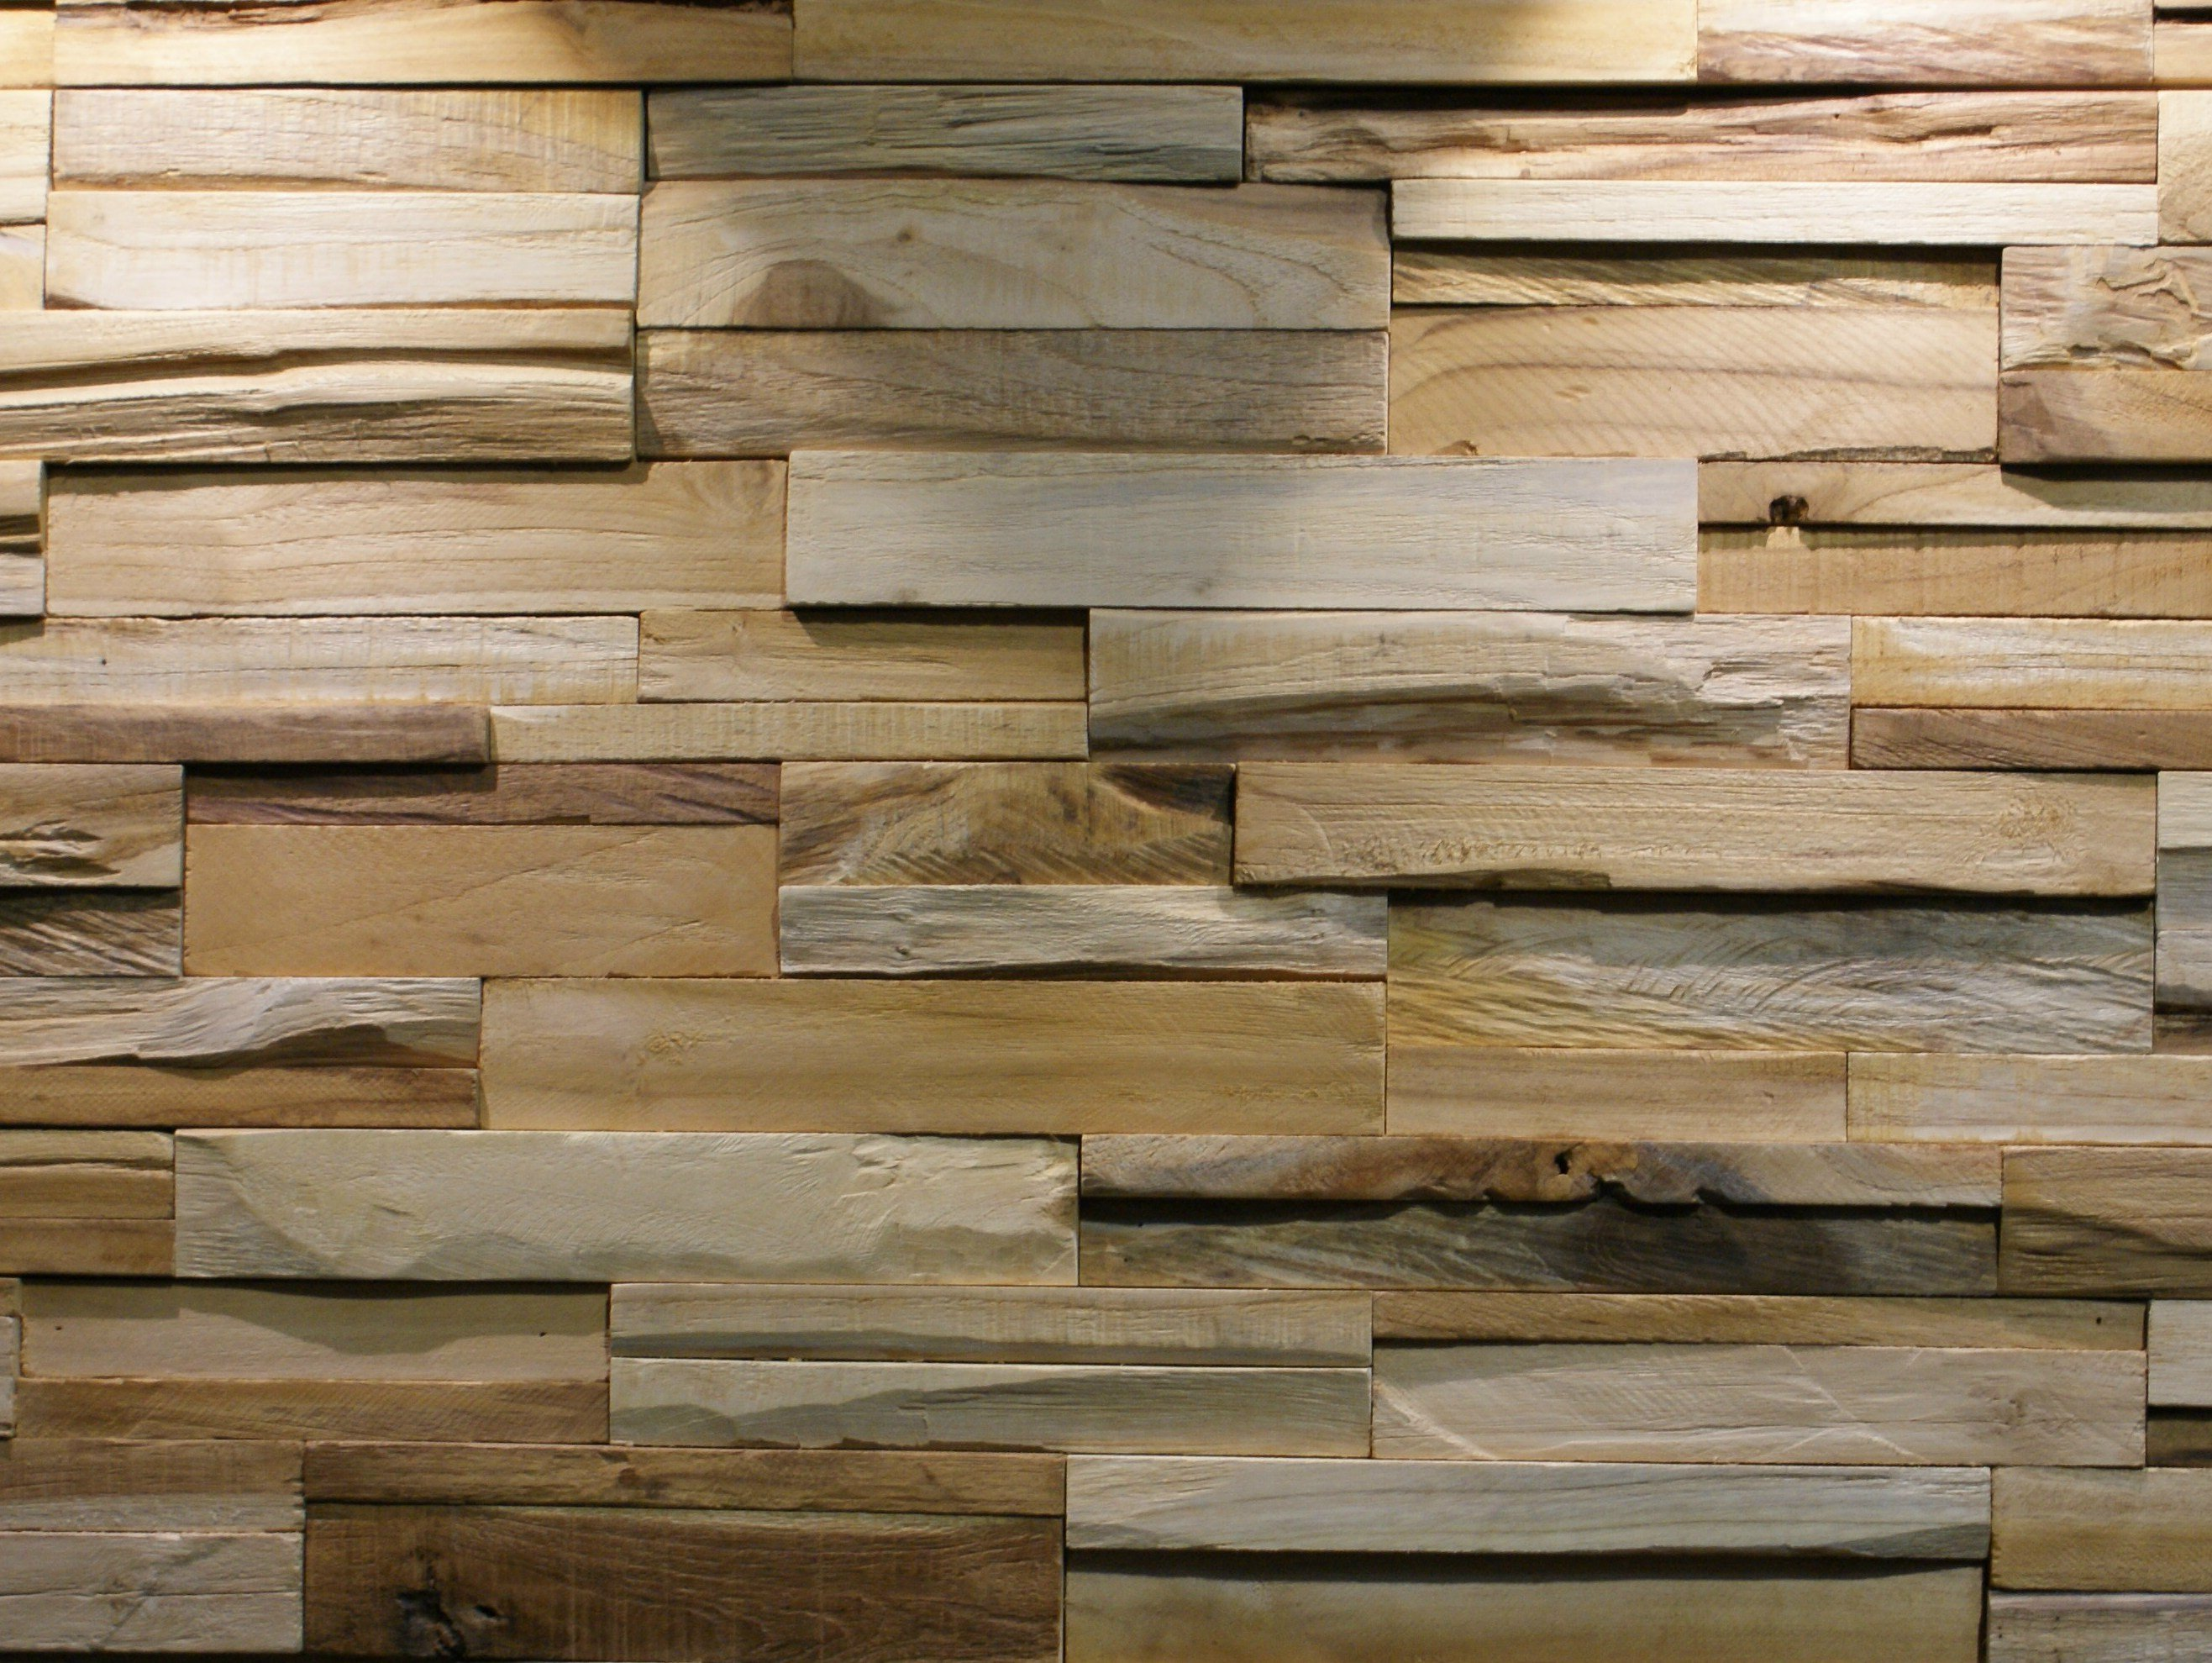 Reclaimed wood 3d wall tile bumpy by teakyourwall for Recycled hardwood